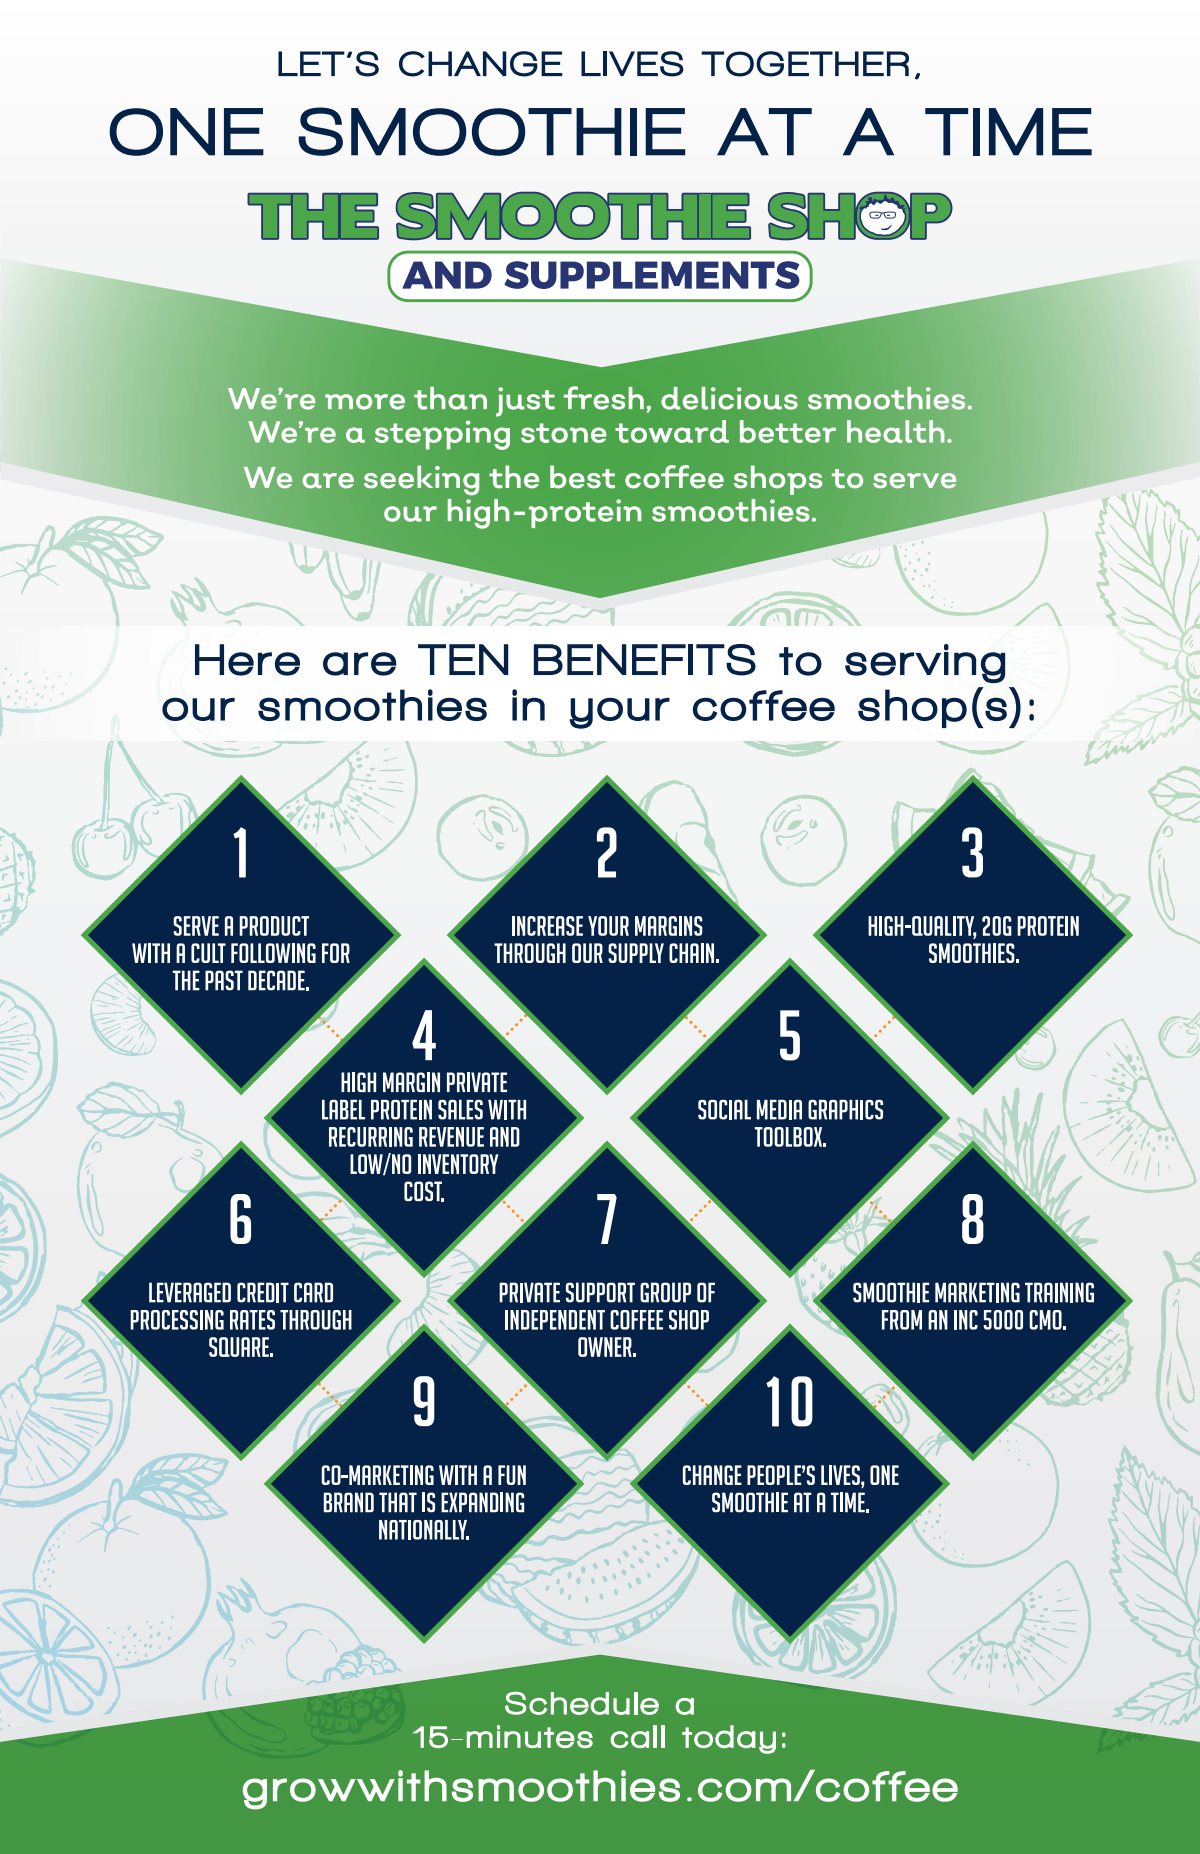 The Smoothie Shop: Coffee Shop Opportunity